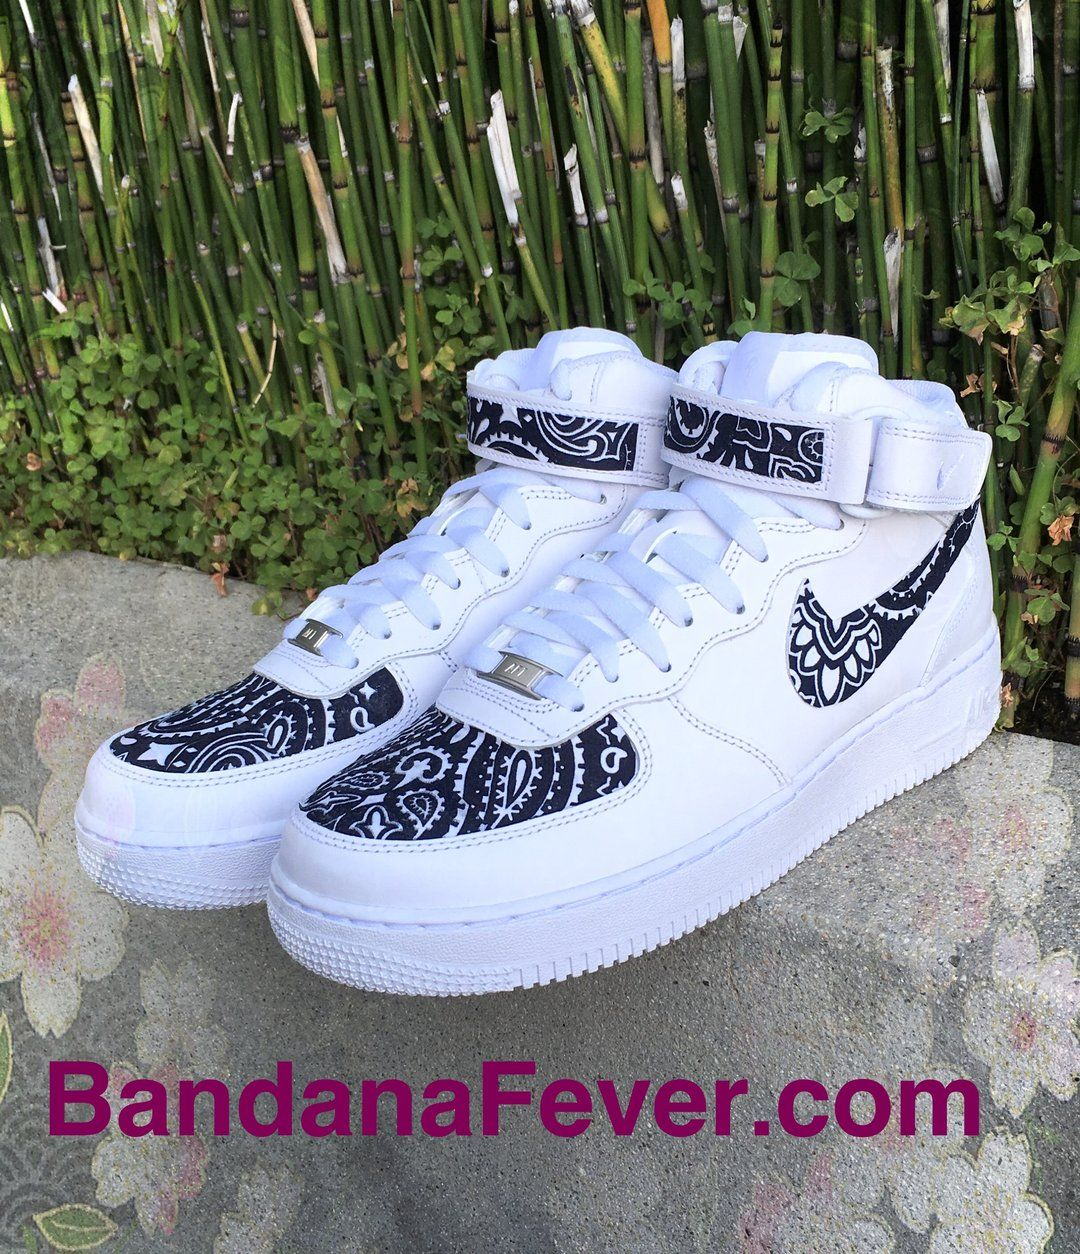 Navy Bandana Scarf Custom Nike Air Force 1 Mid Wht TC